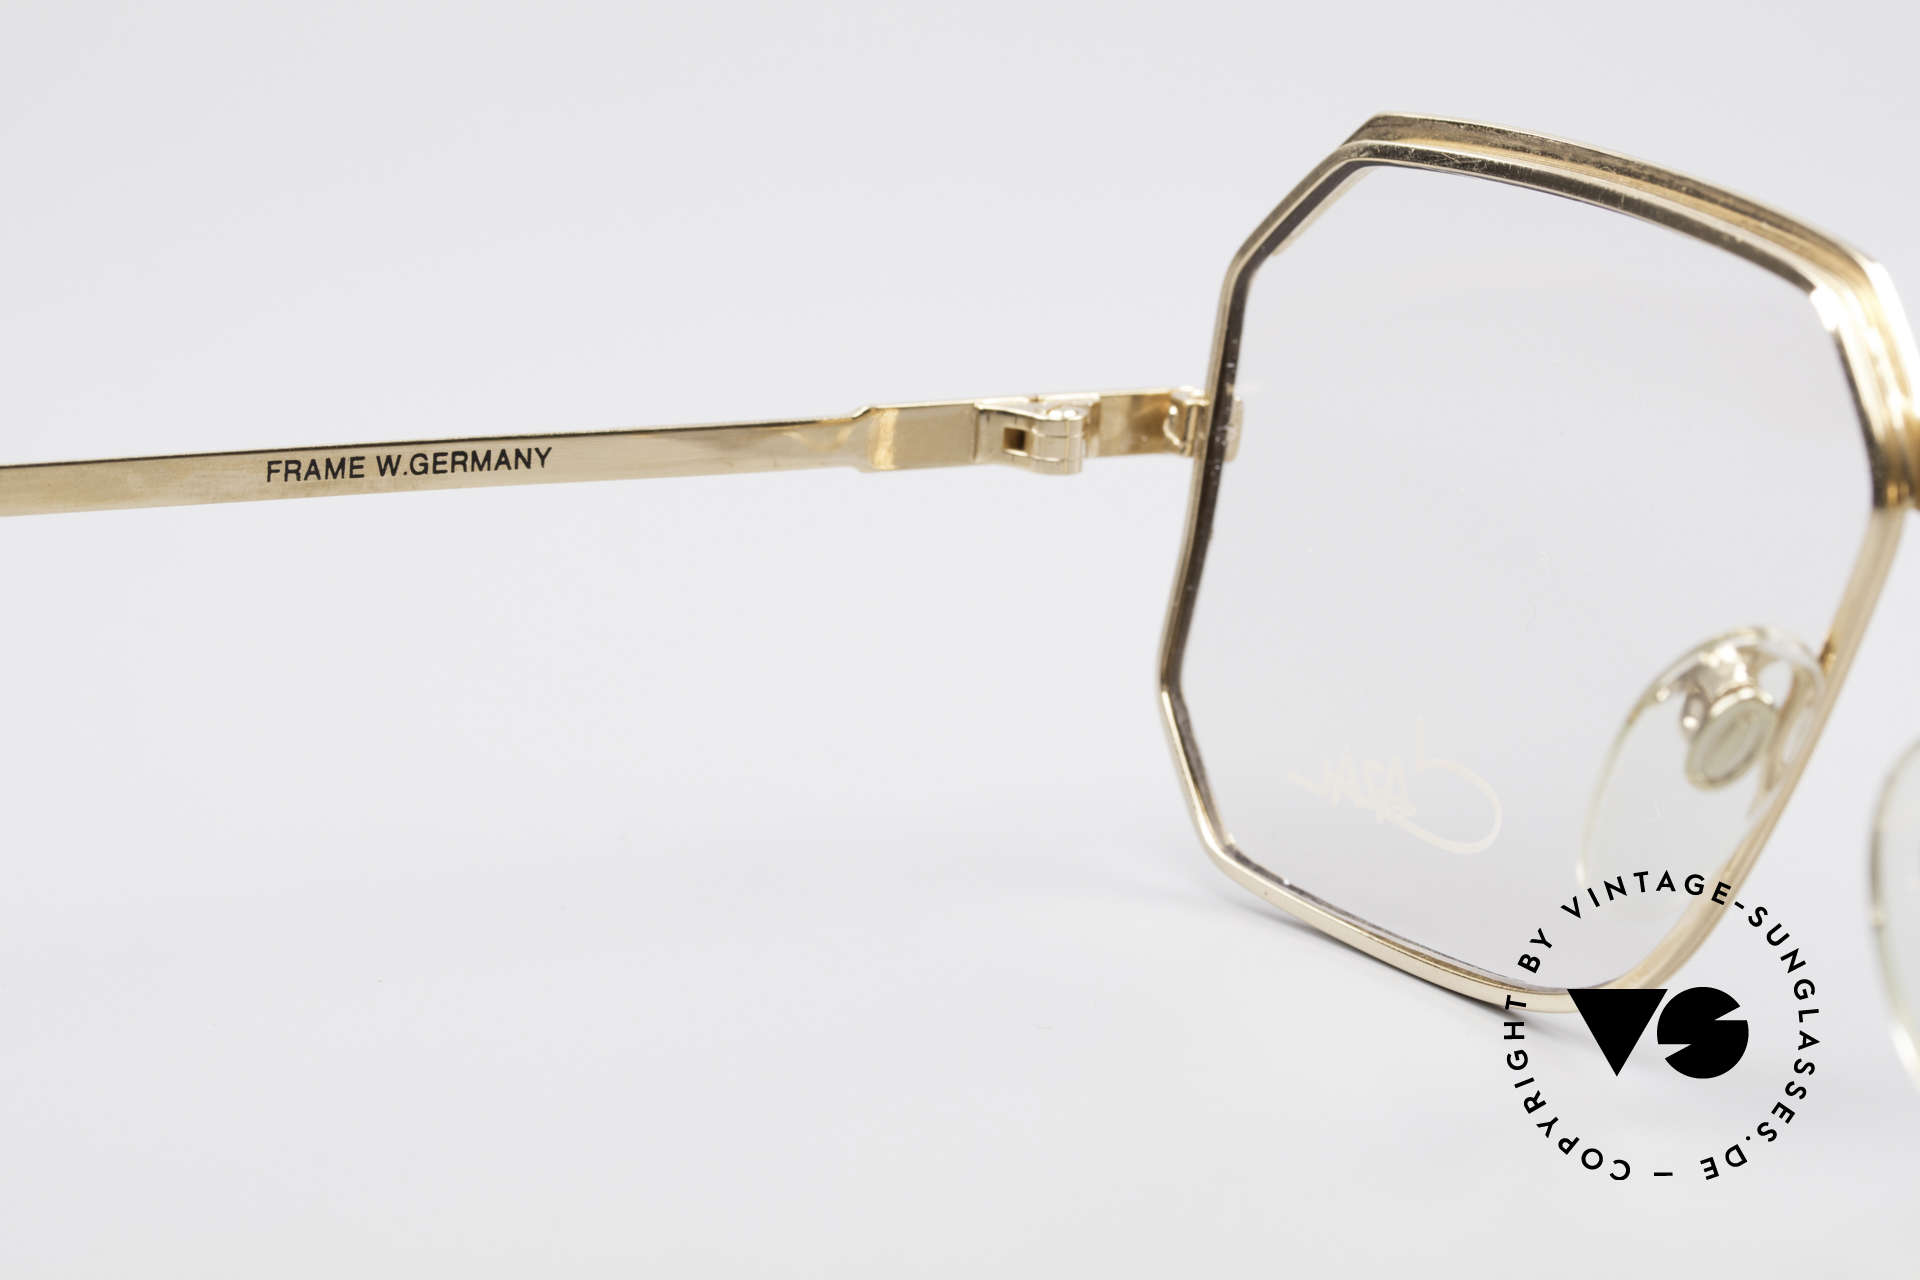 Cazal 727 Michail Gorbatschow Glasses, the demo lenses can be replaced optionally, Made for Men